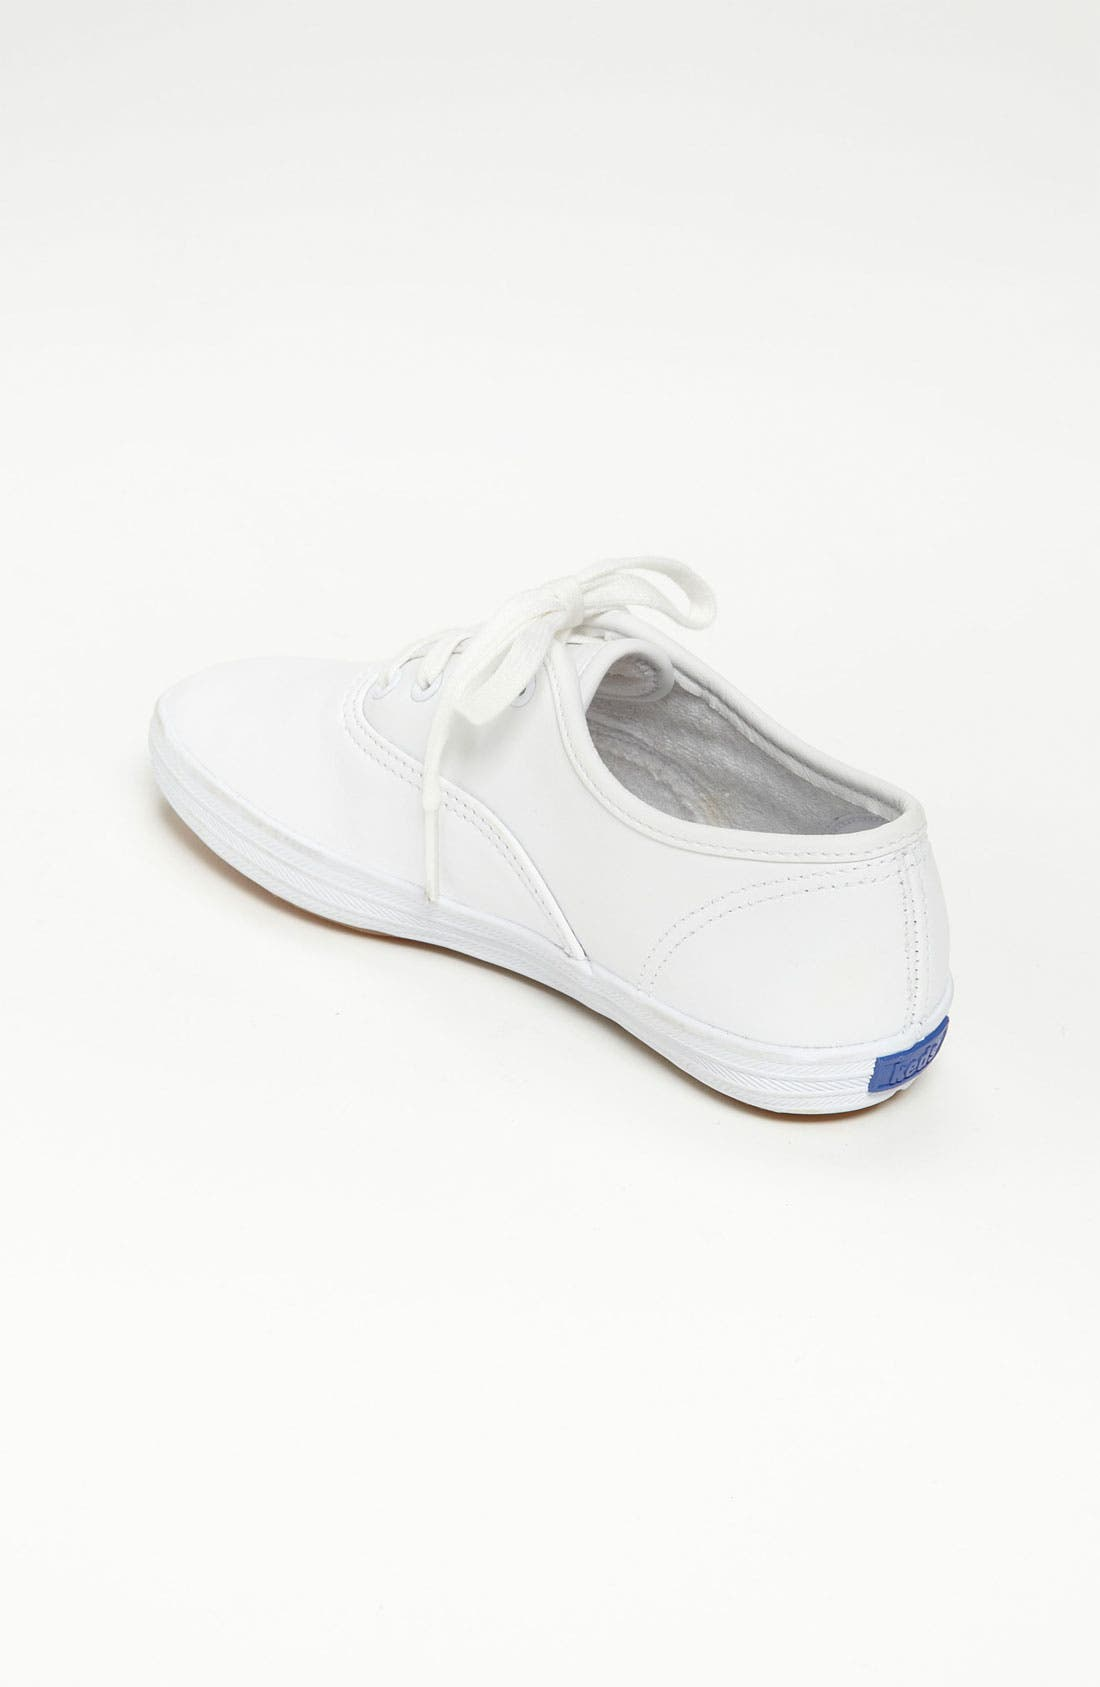 'Champion' Sneaker,                             Alternate thumbnail 2, color,                             White Leather